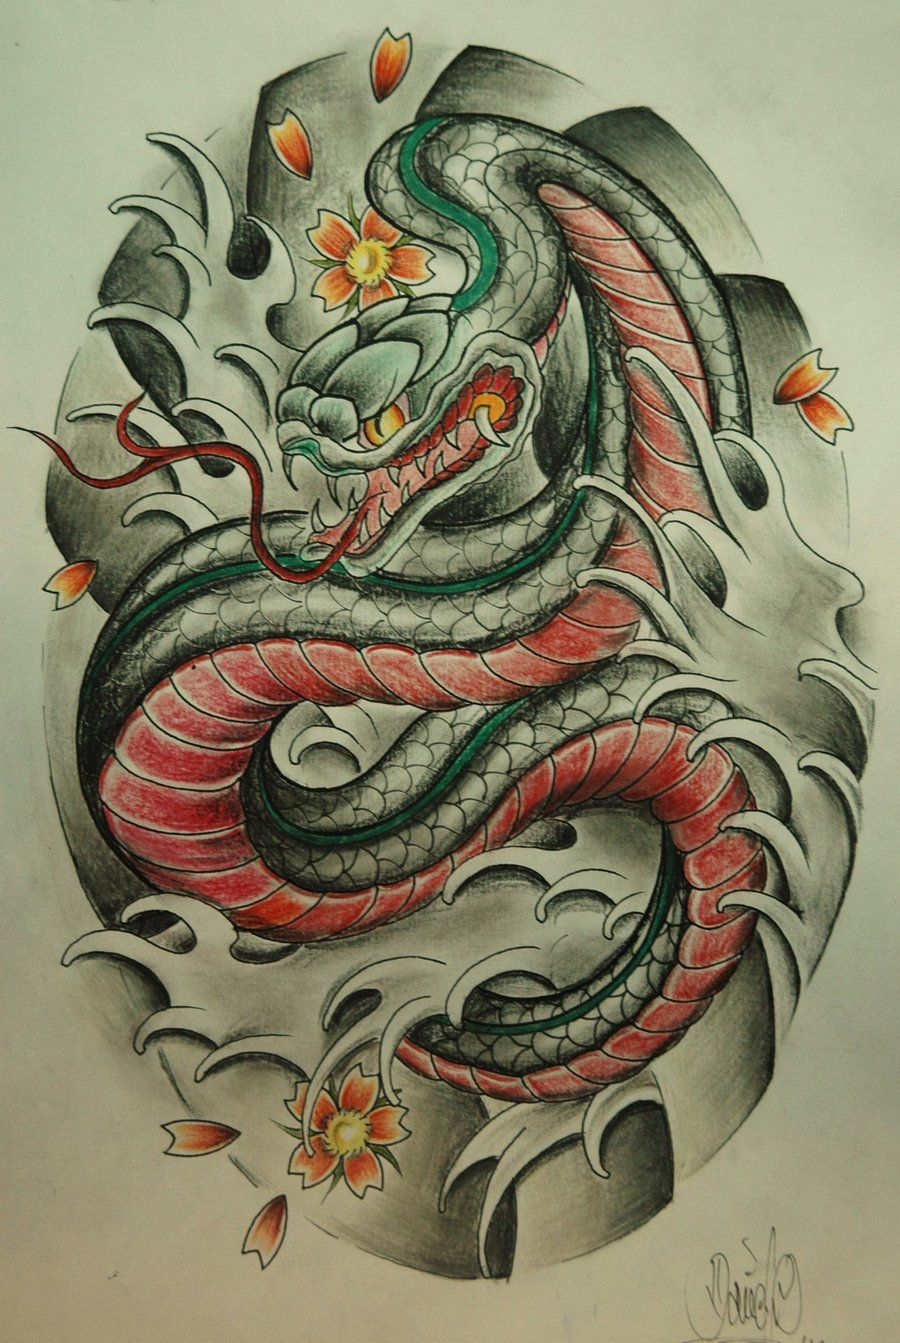 neo snake sketch google search printme tatouage tatouage japonaise tatouages serpent. Black Bedroom Furniture Sets. Home Design Ideas